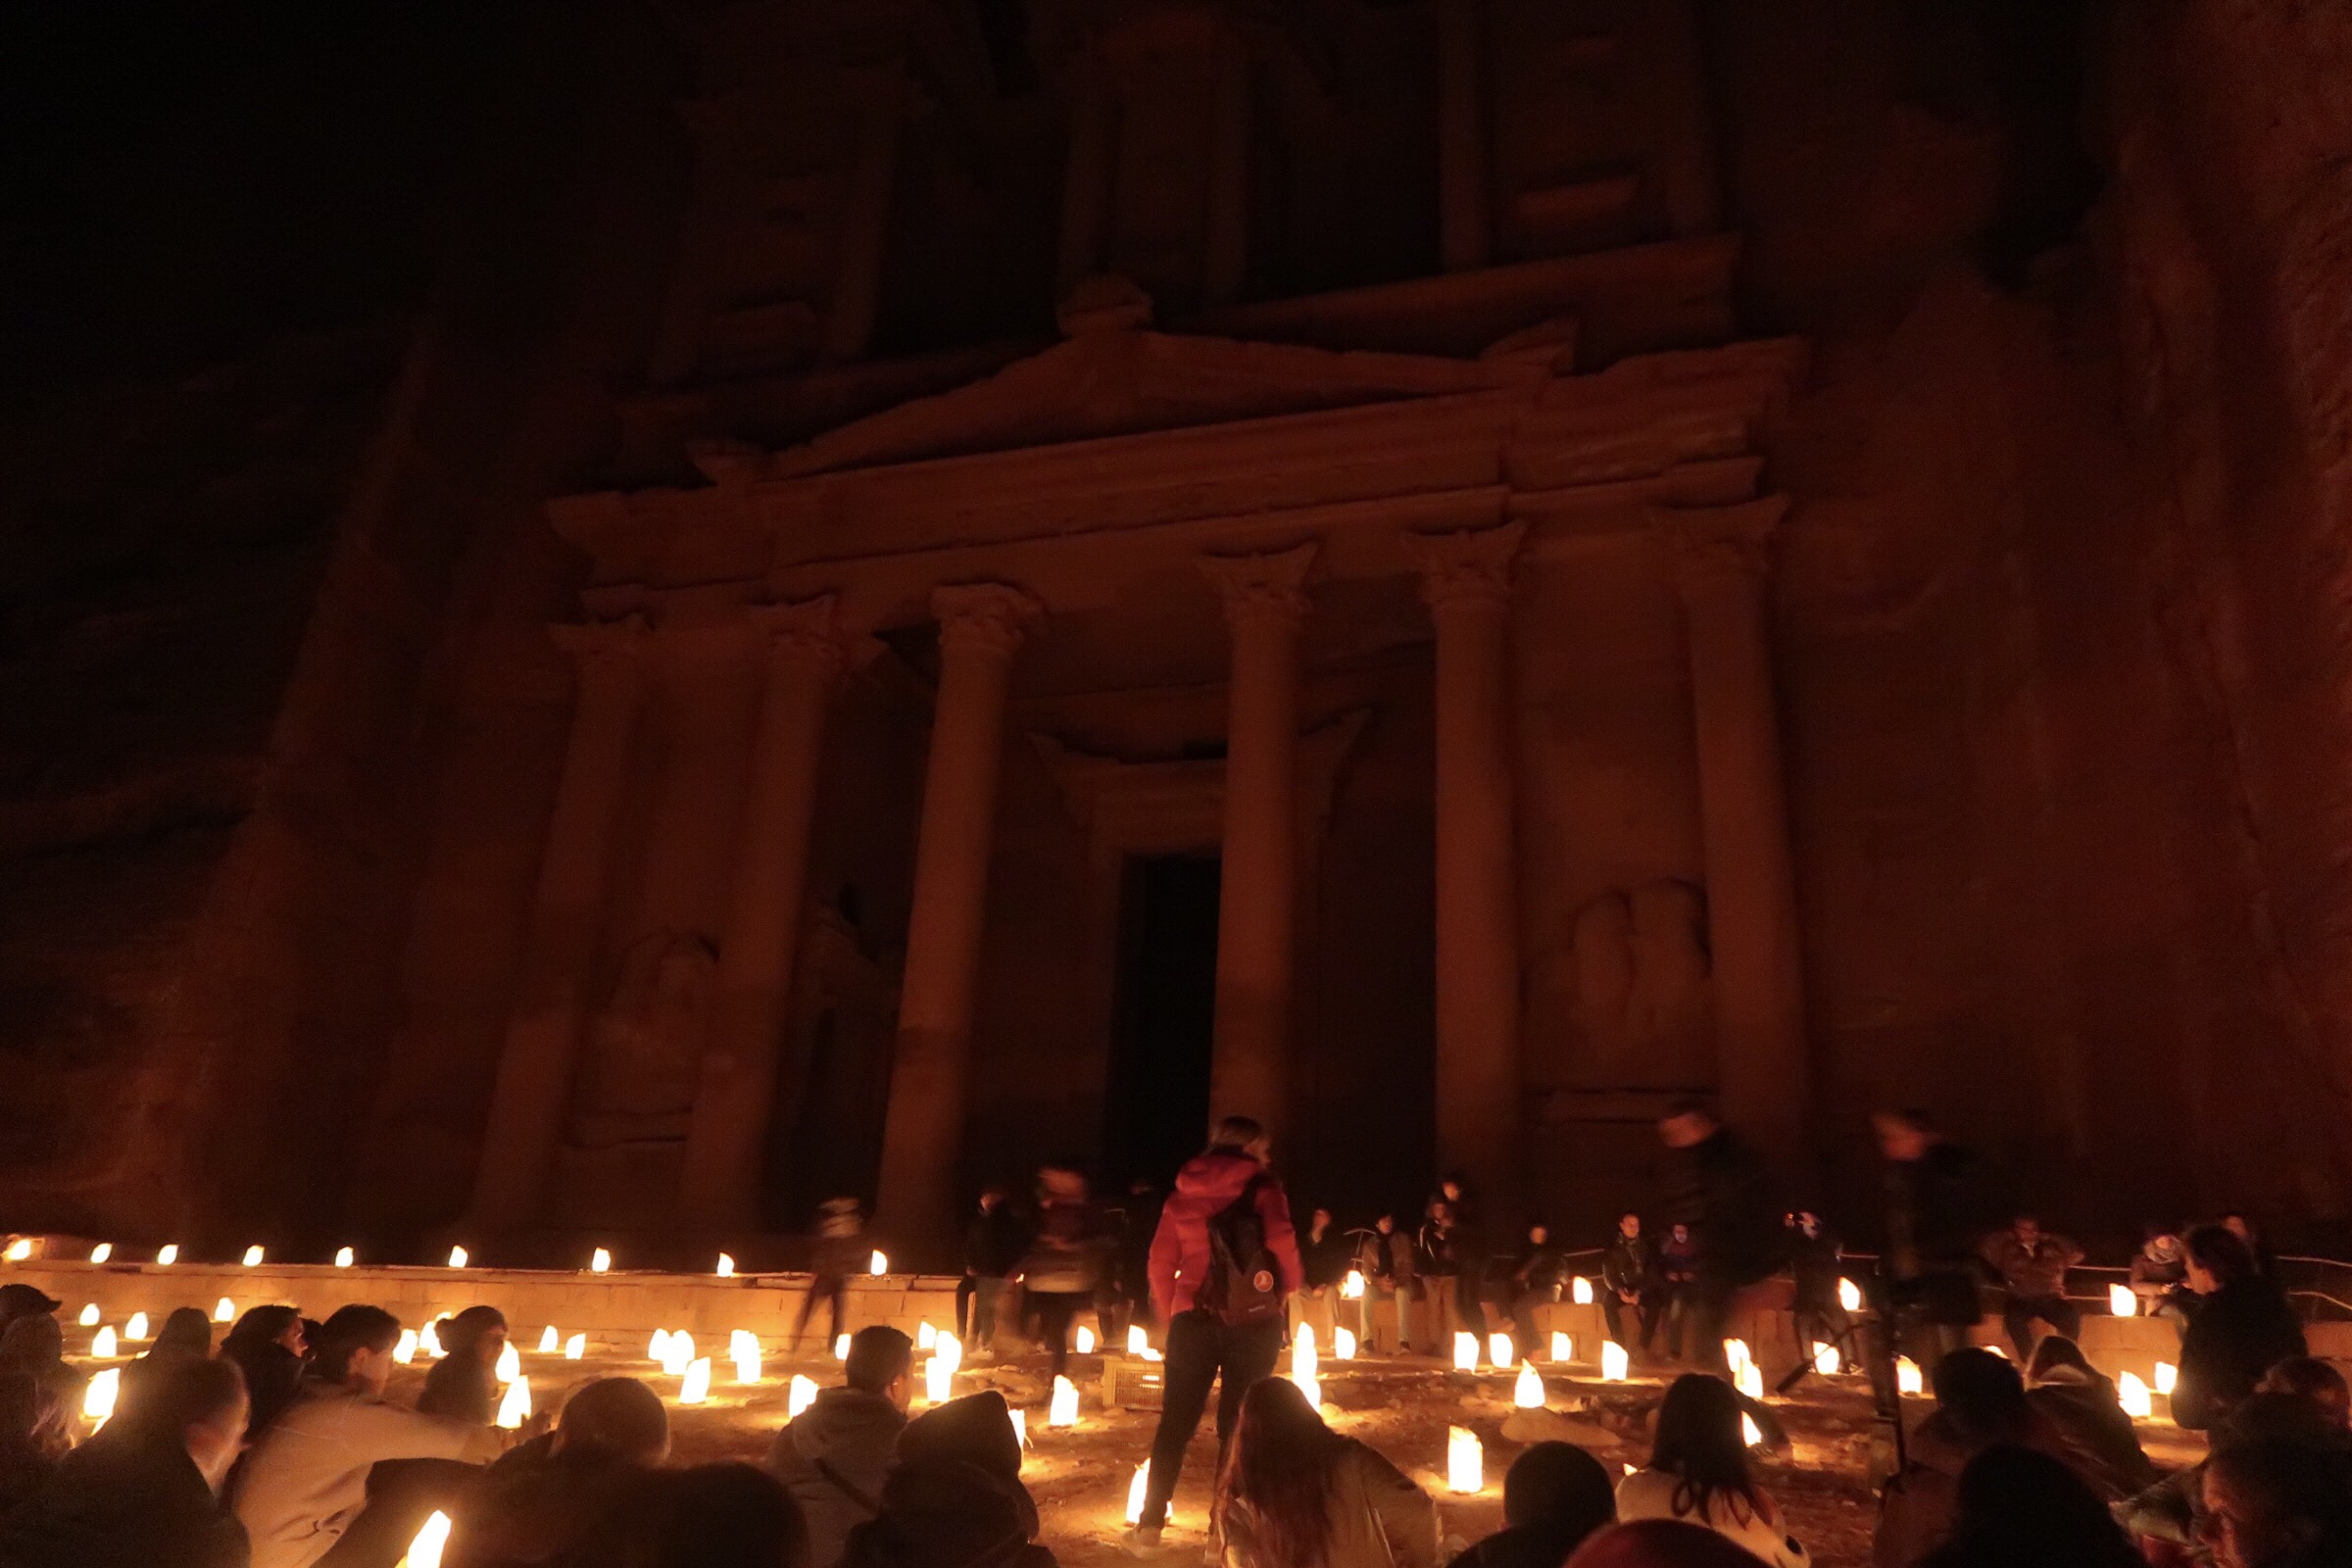 The Treasury lit up only be candle light